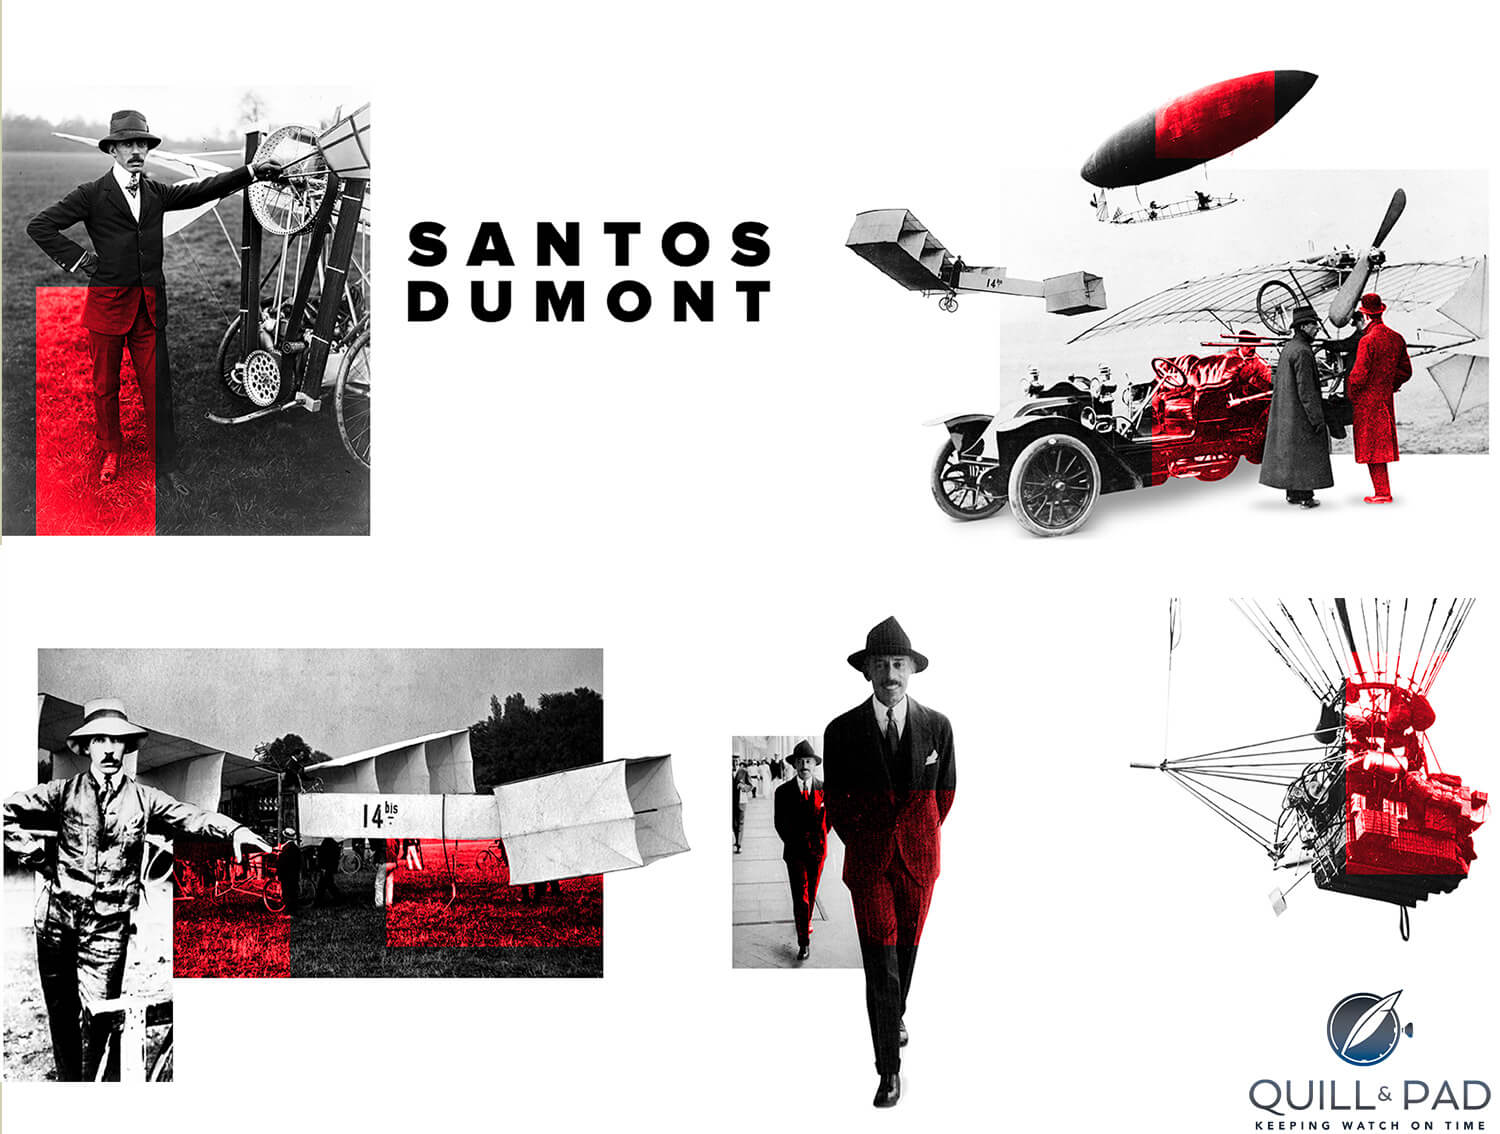 Alberto Santos-Dumont: Louis Cartier's dandy aviator friend